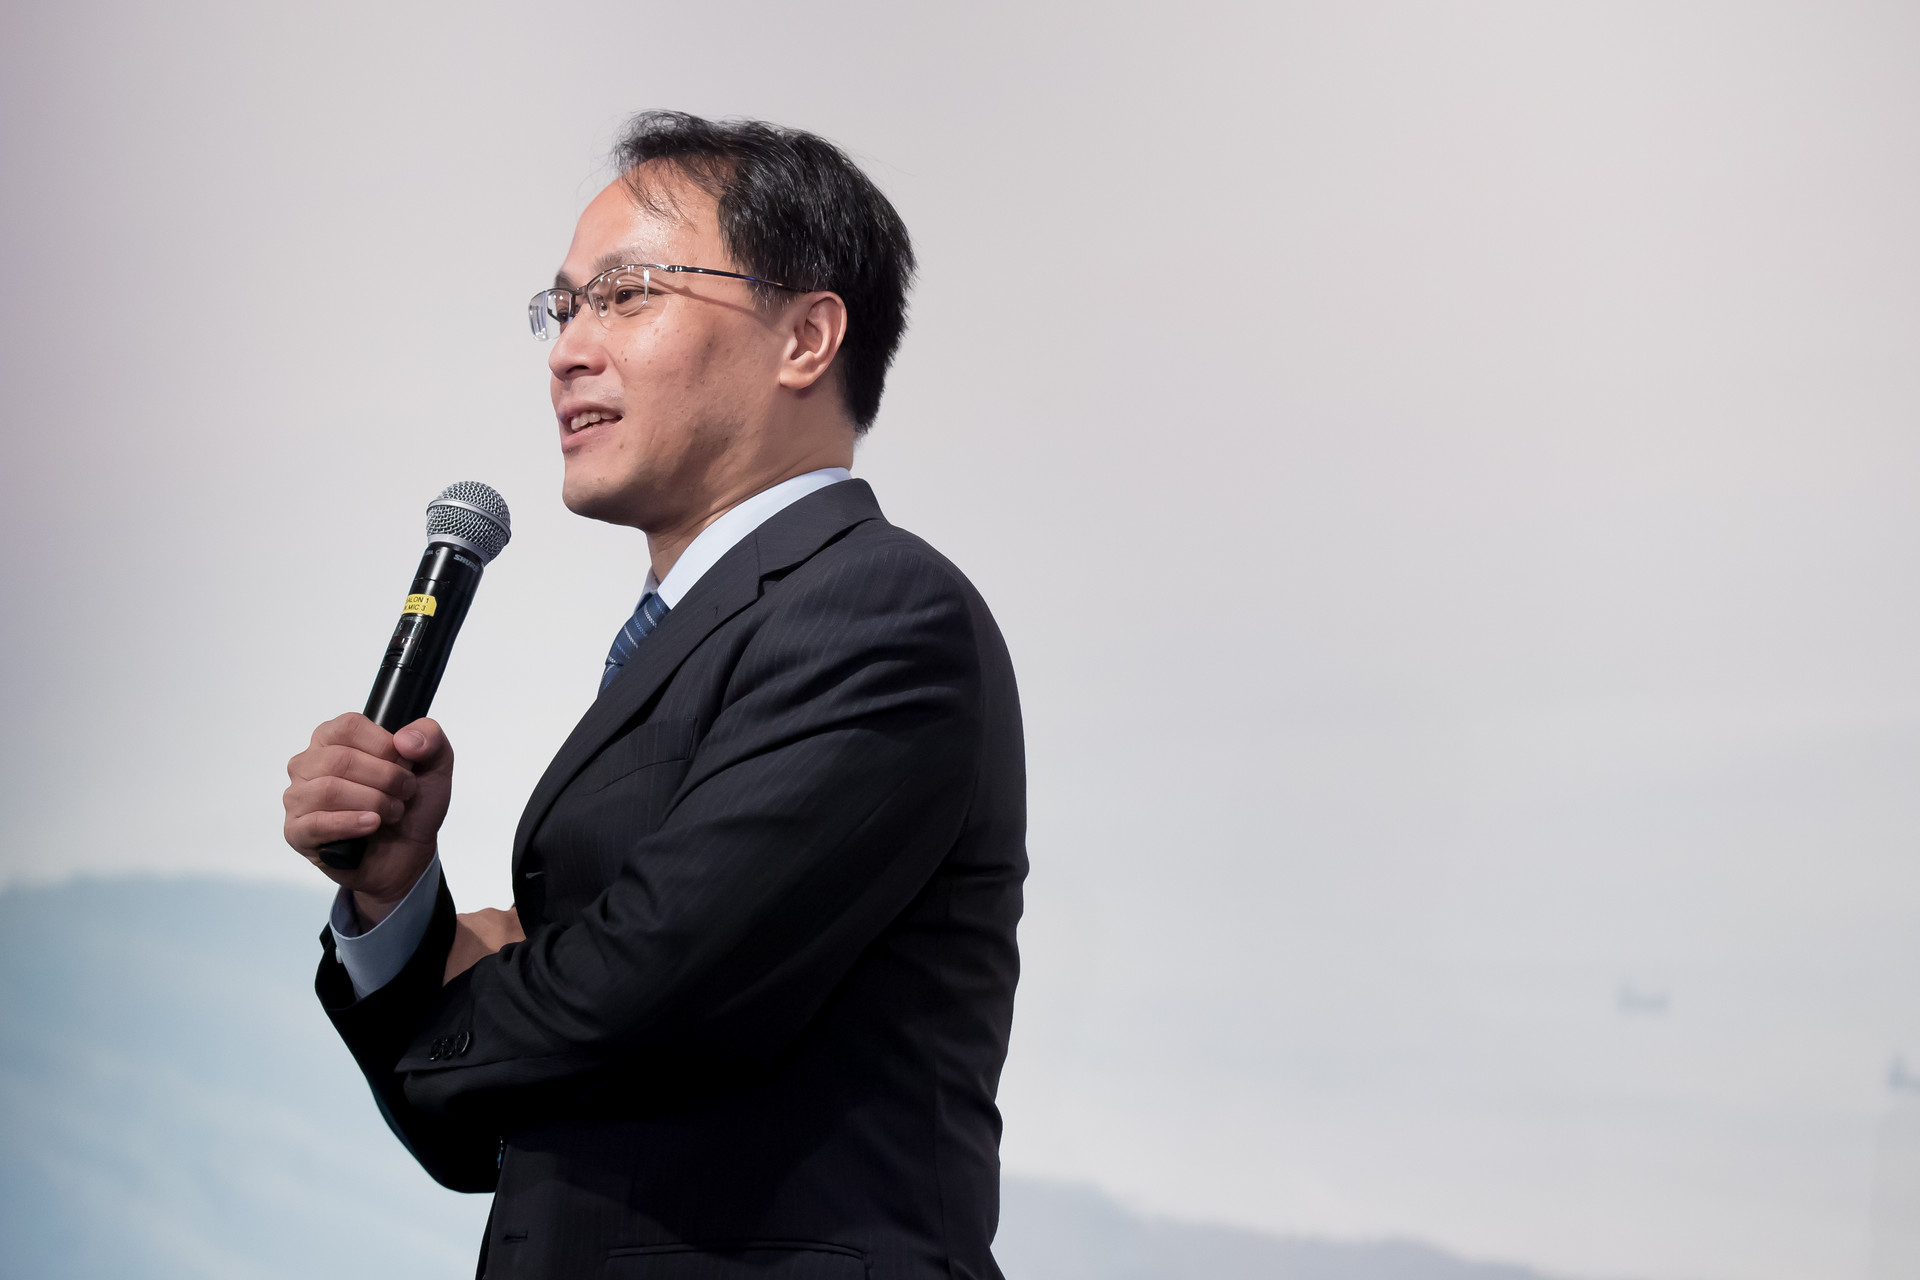 Asian businessmen holding microphone